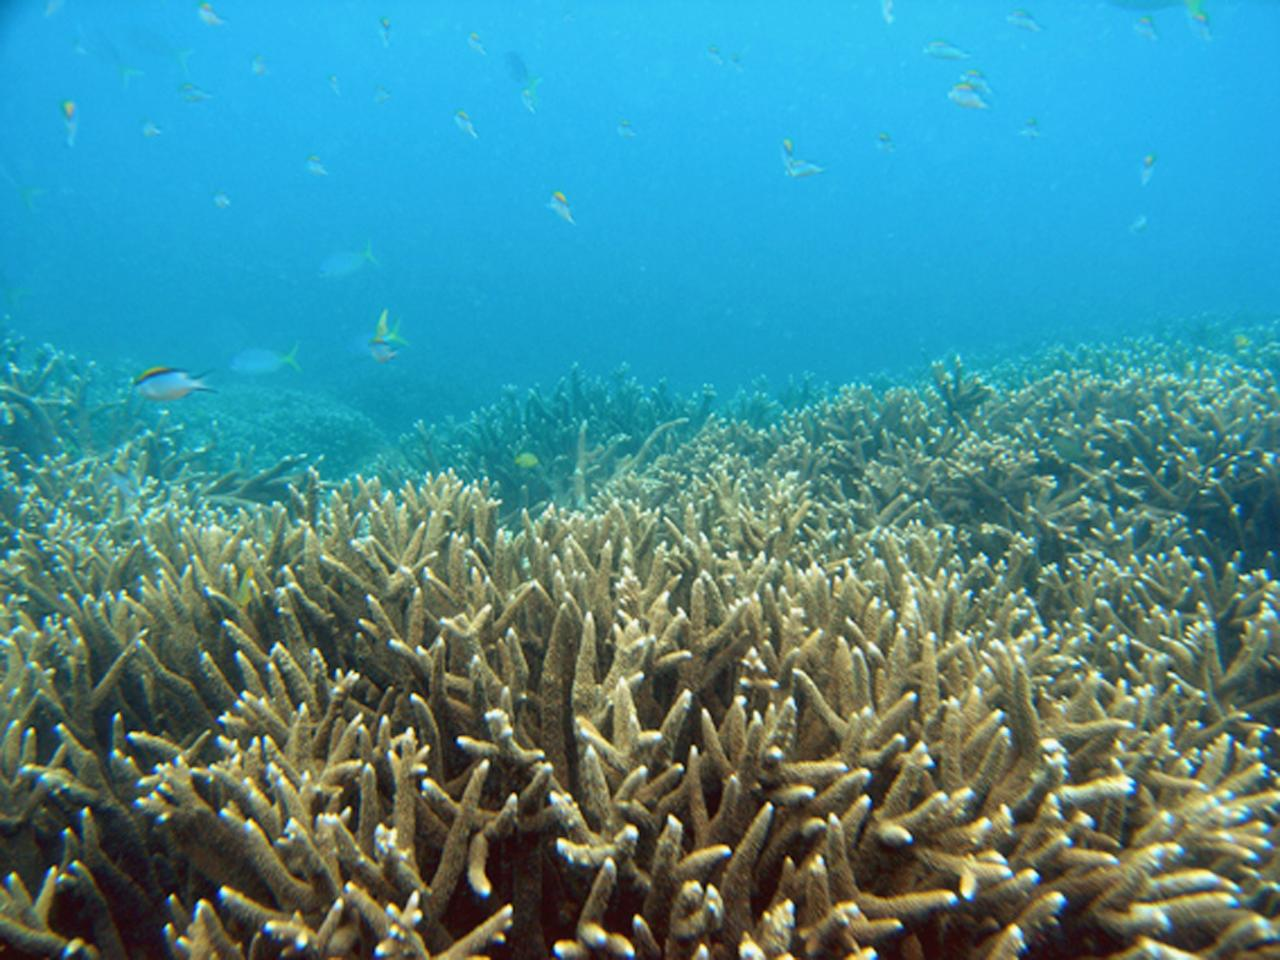 Using economic modelling, it said the reef was worth Aus$29 billion to tourism, supporting 64,000 jobs.